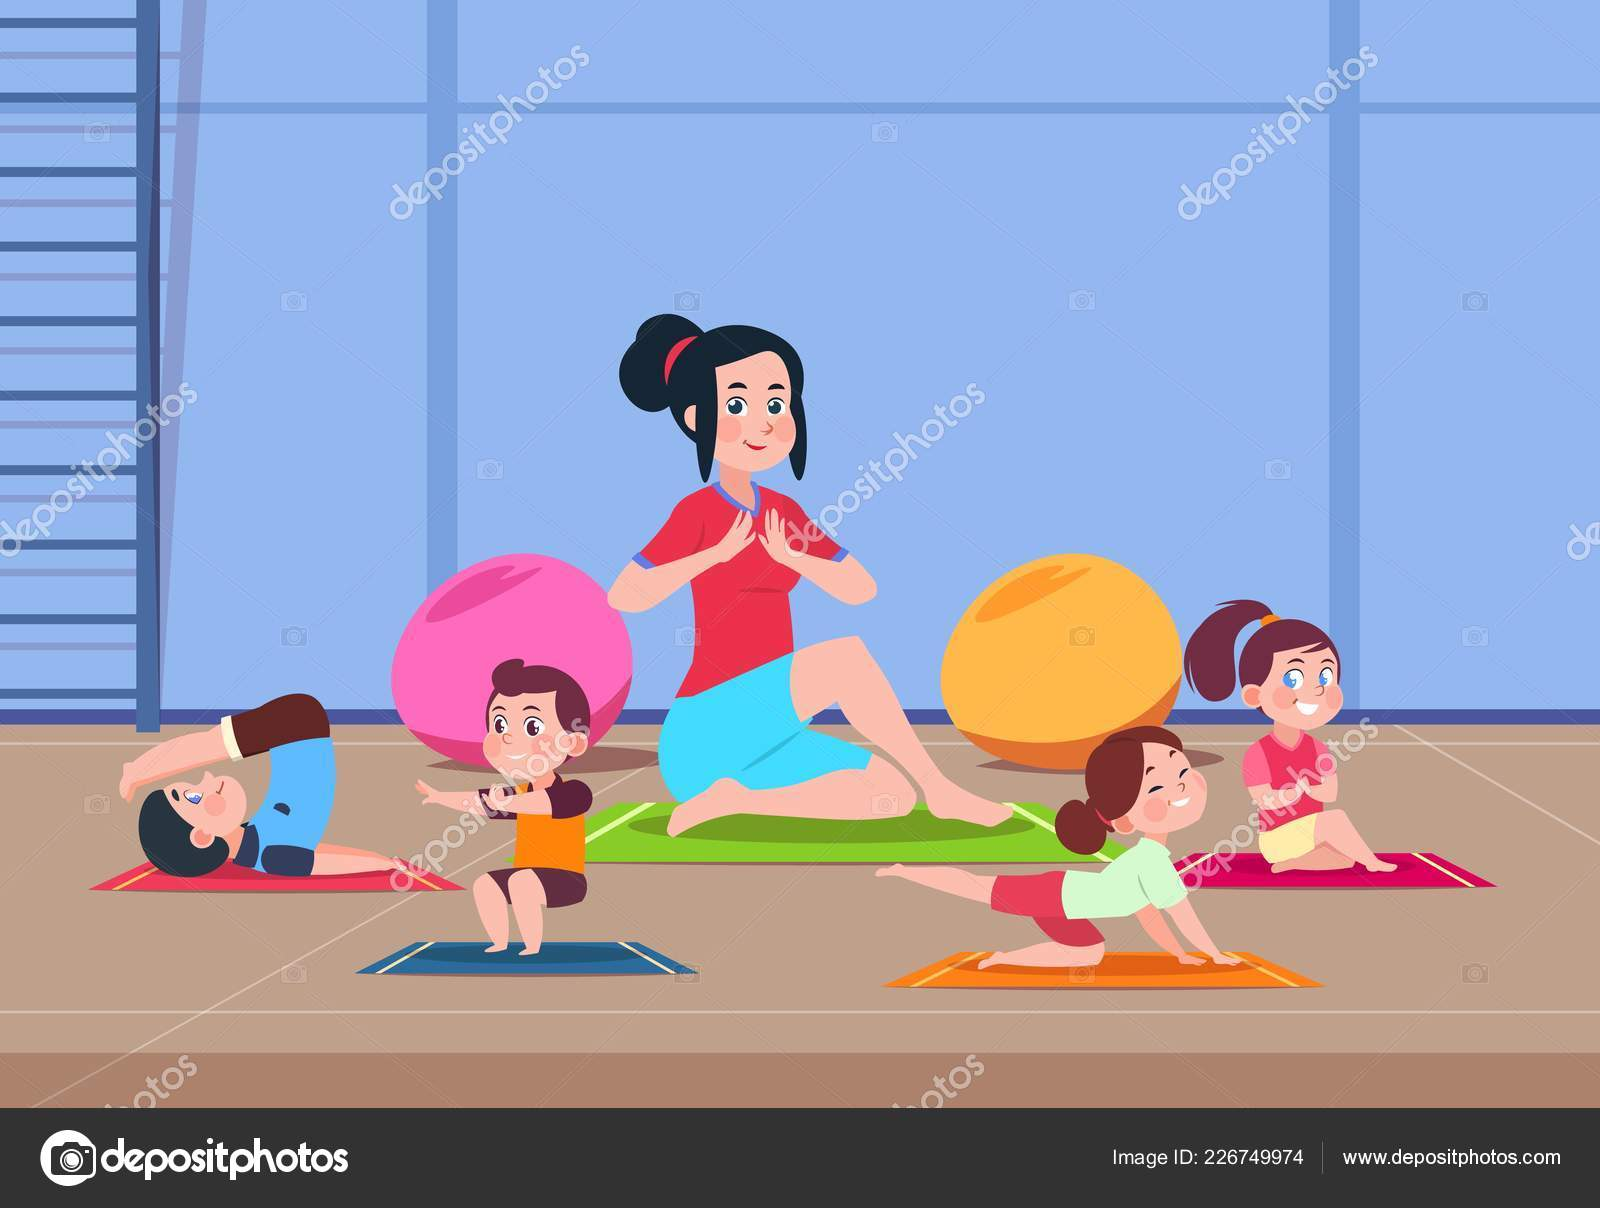 Images Exercise Class Cartoon Kids In Yoga Class Cartoon Children With Instructor Doing Yoga Exercises In Gym Interior Healthy Lifestyle Vector Concept Stock Vector C Microone 226749974